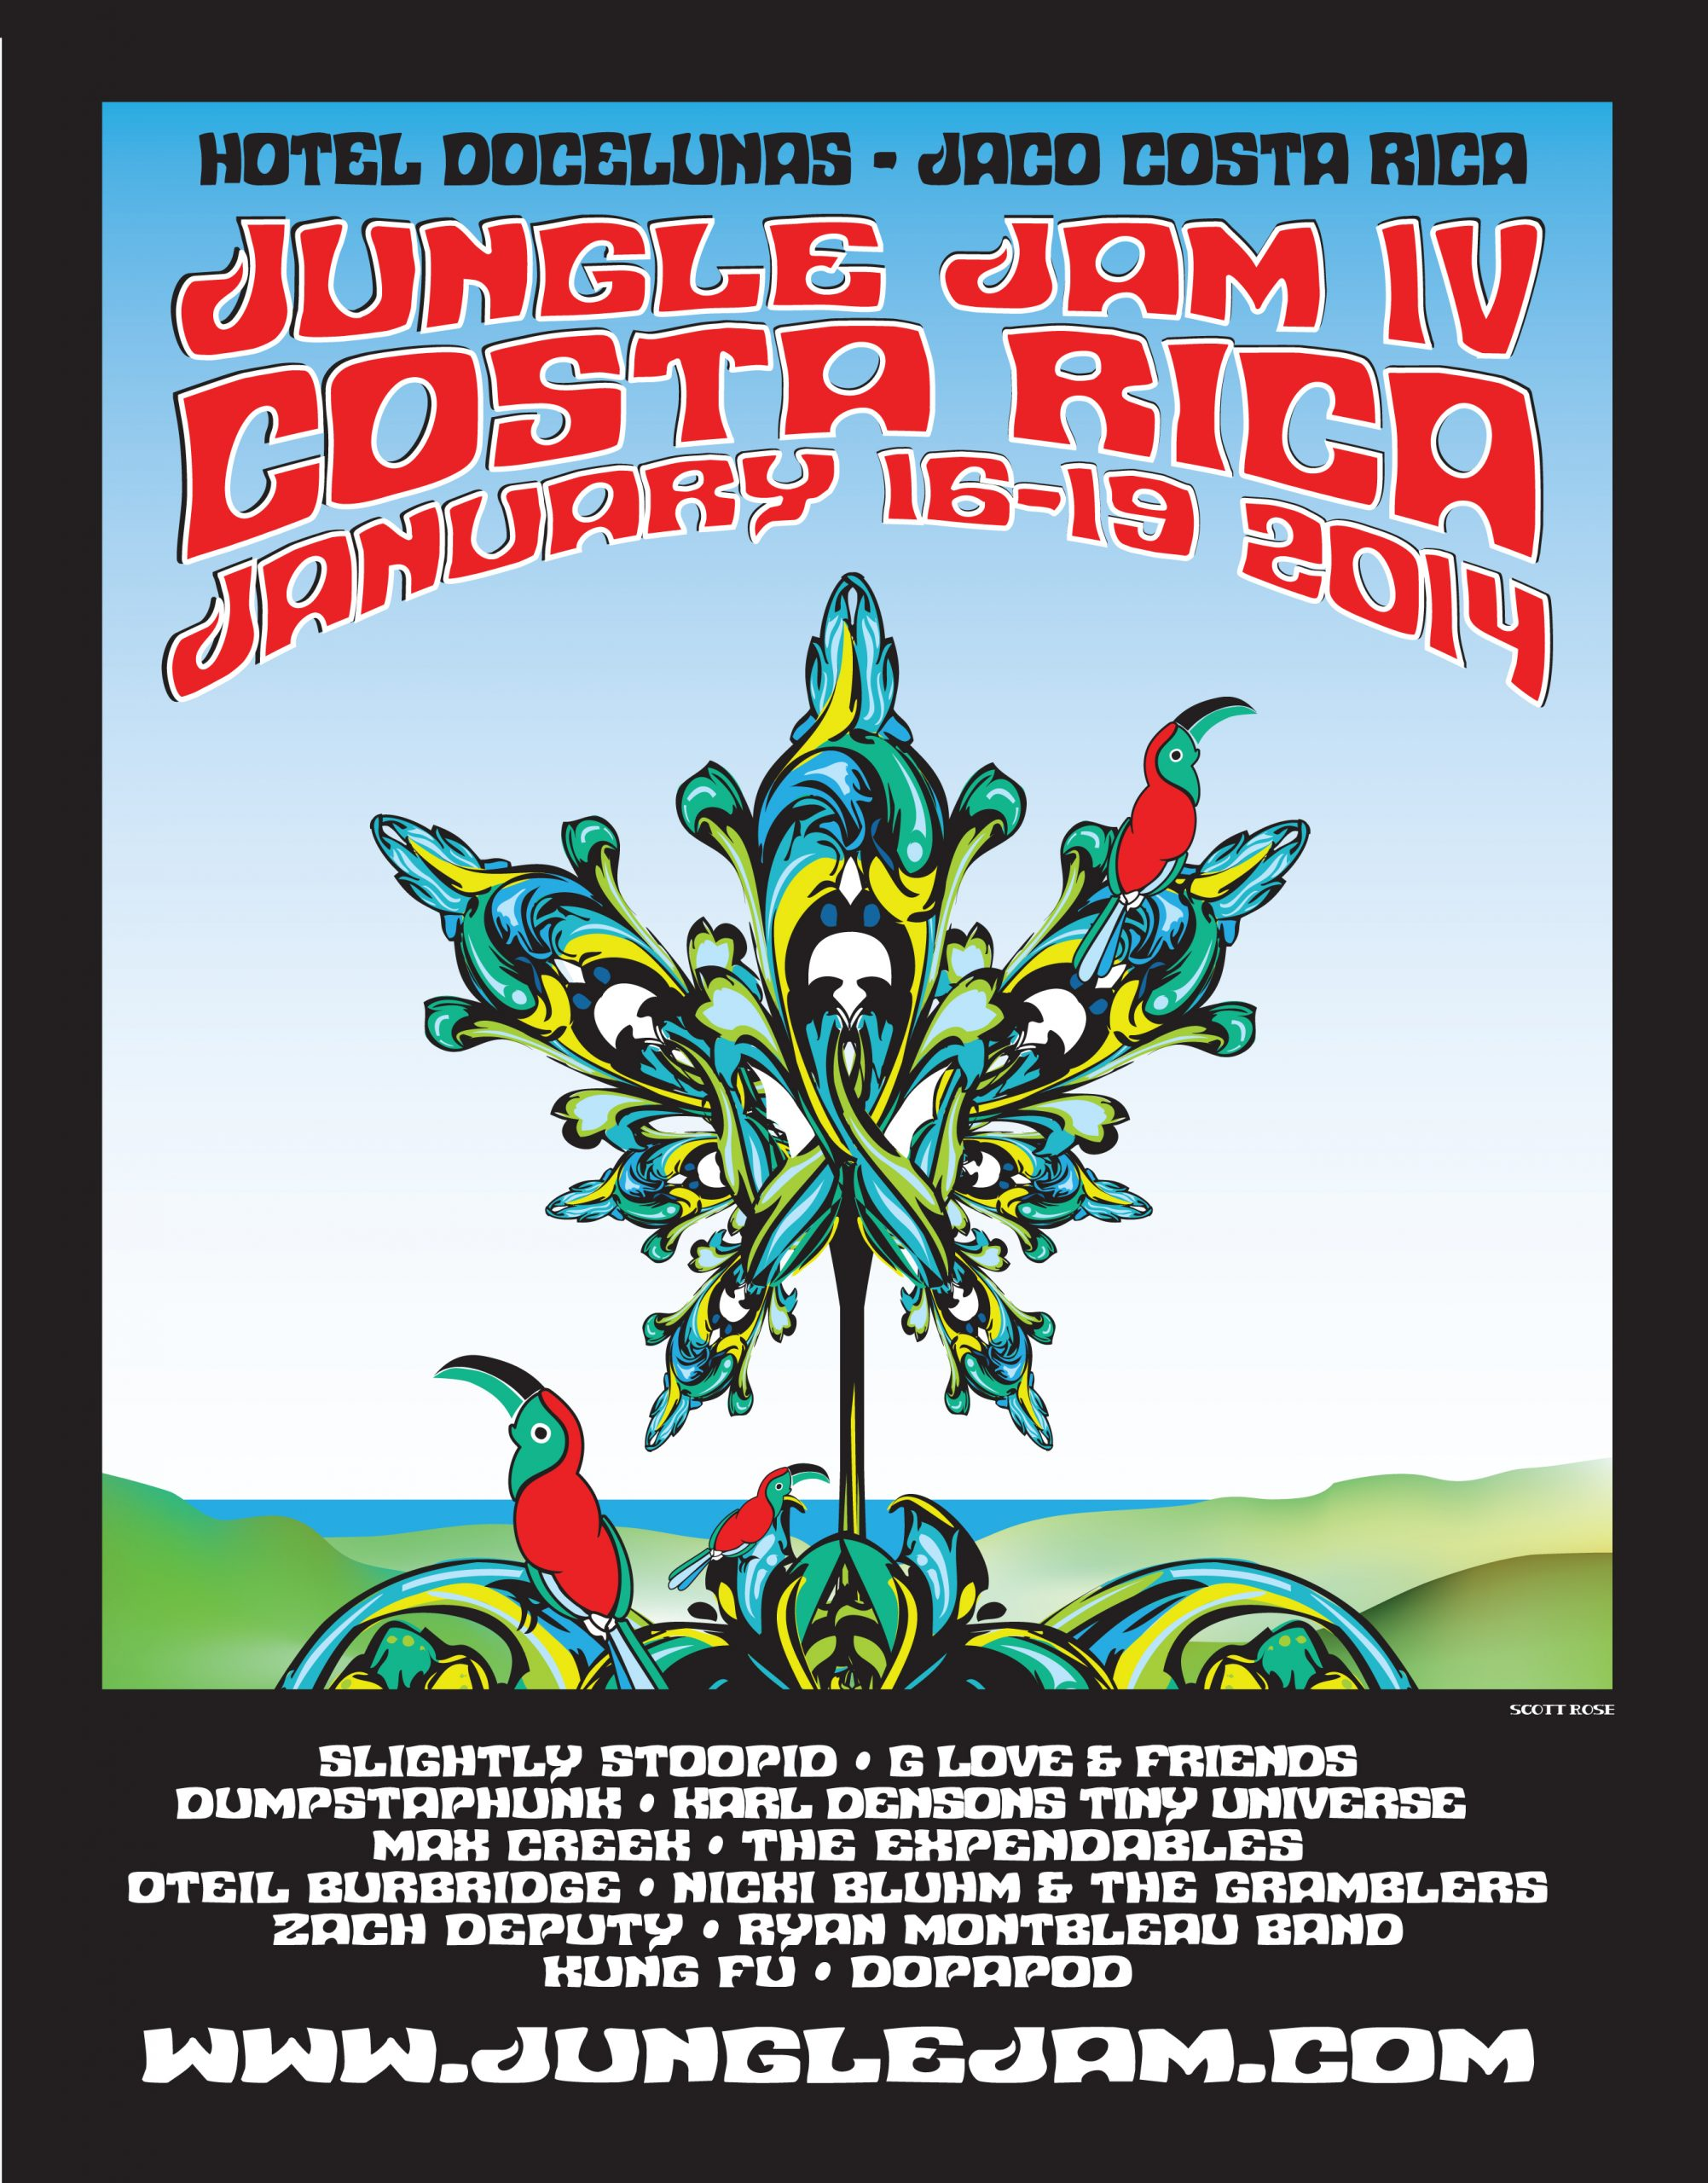 Exclusive Interview with Founder of Jungle Jam – Costa Rica, Jan. 16-19 2014